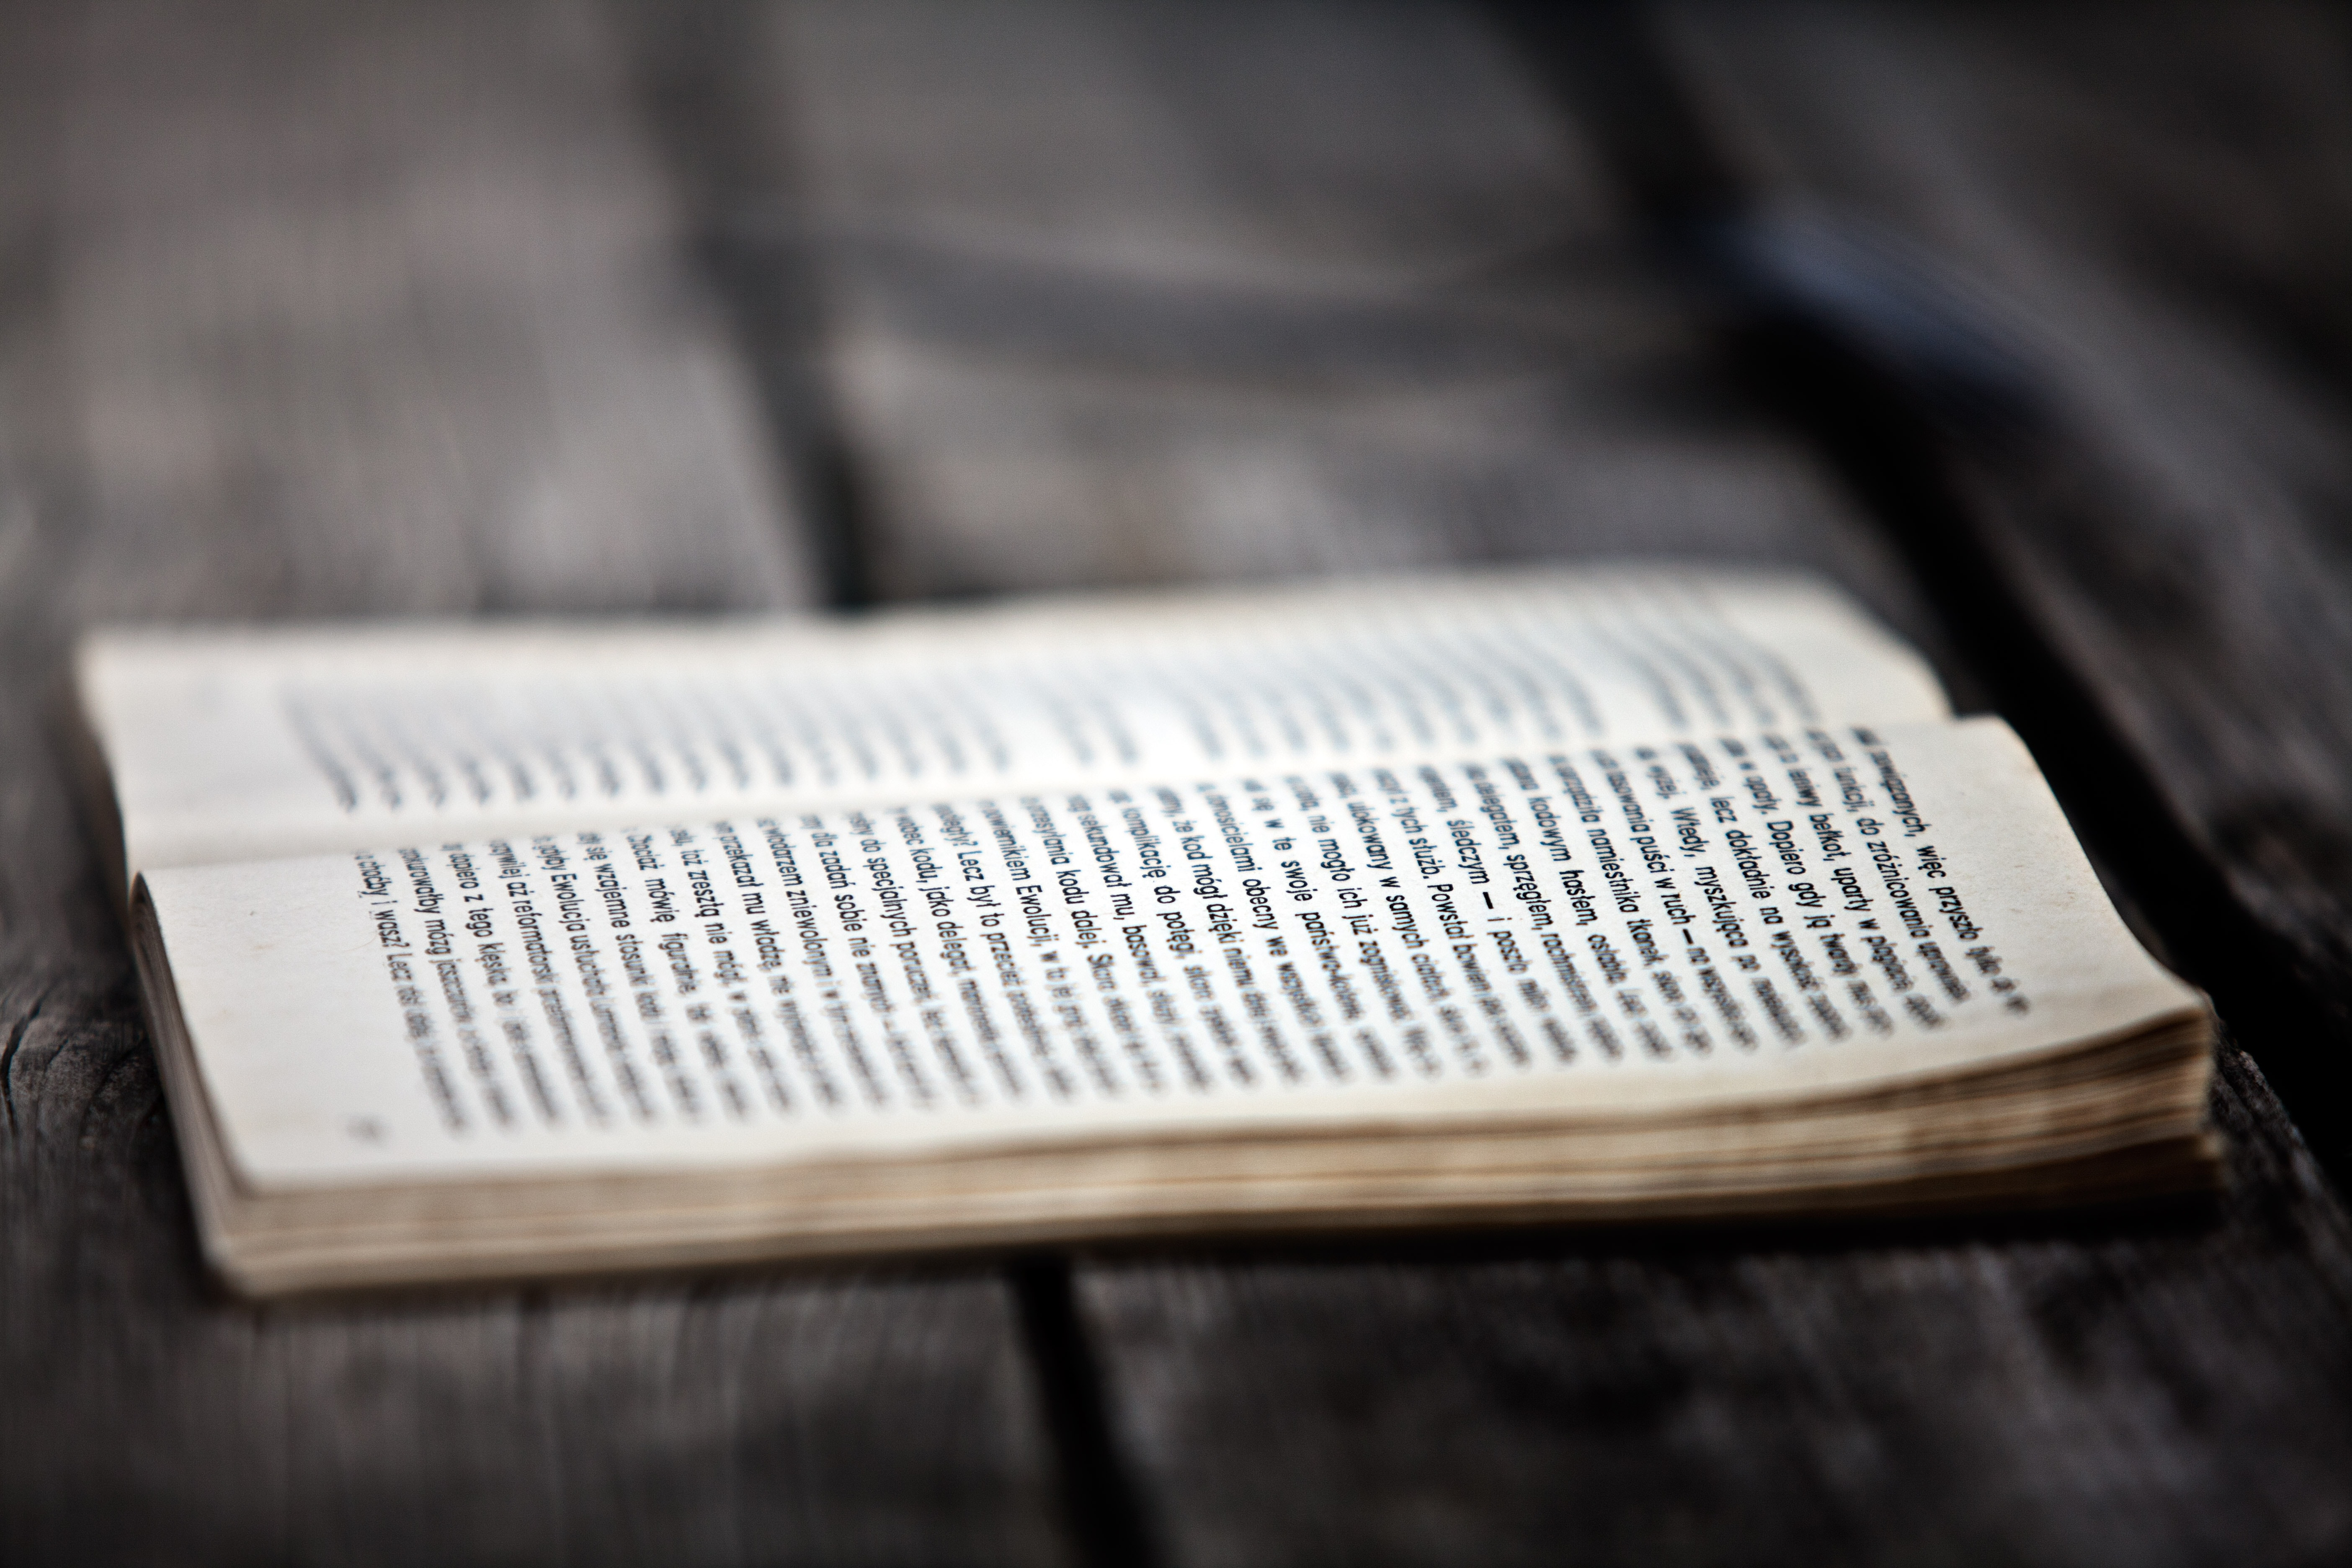 Opened Book on Wooden Board, Blur, Book, Book series, Data, HQ Photo